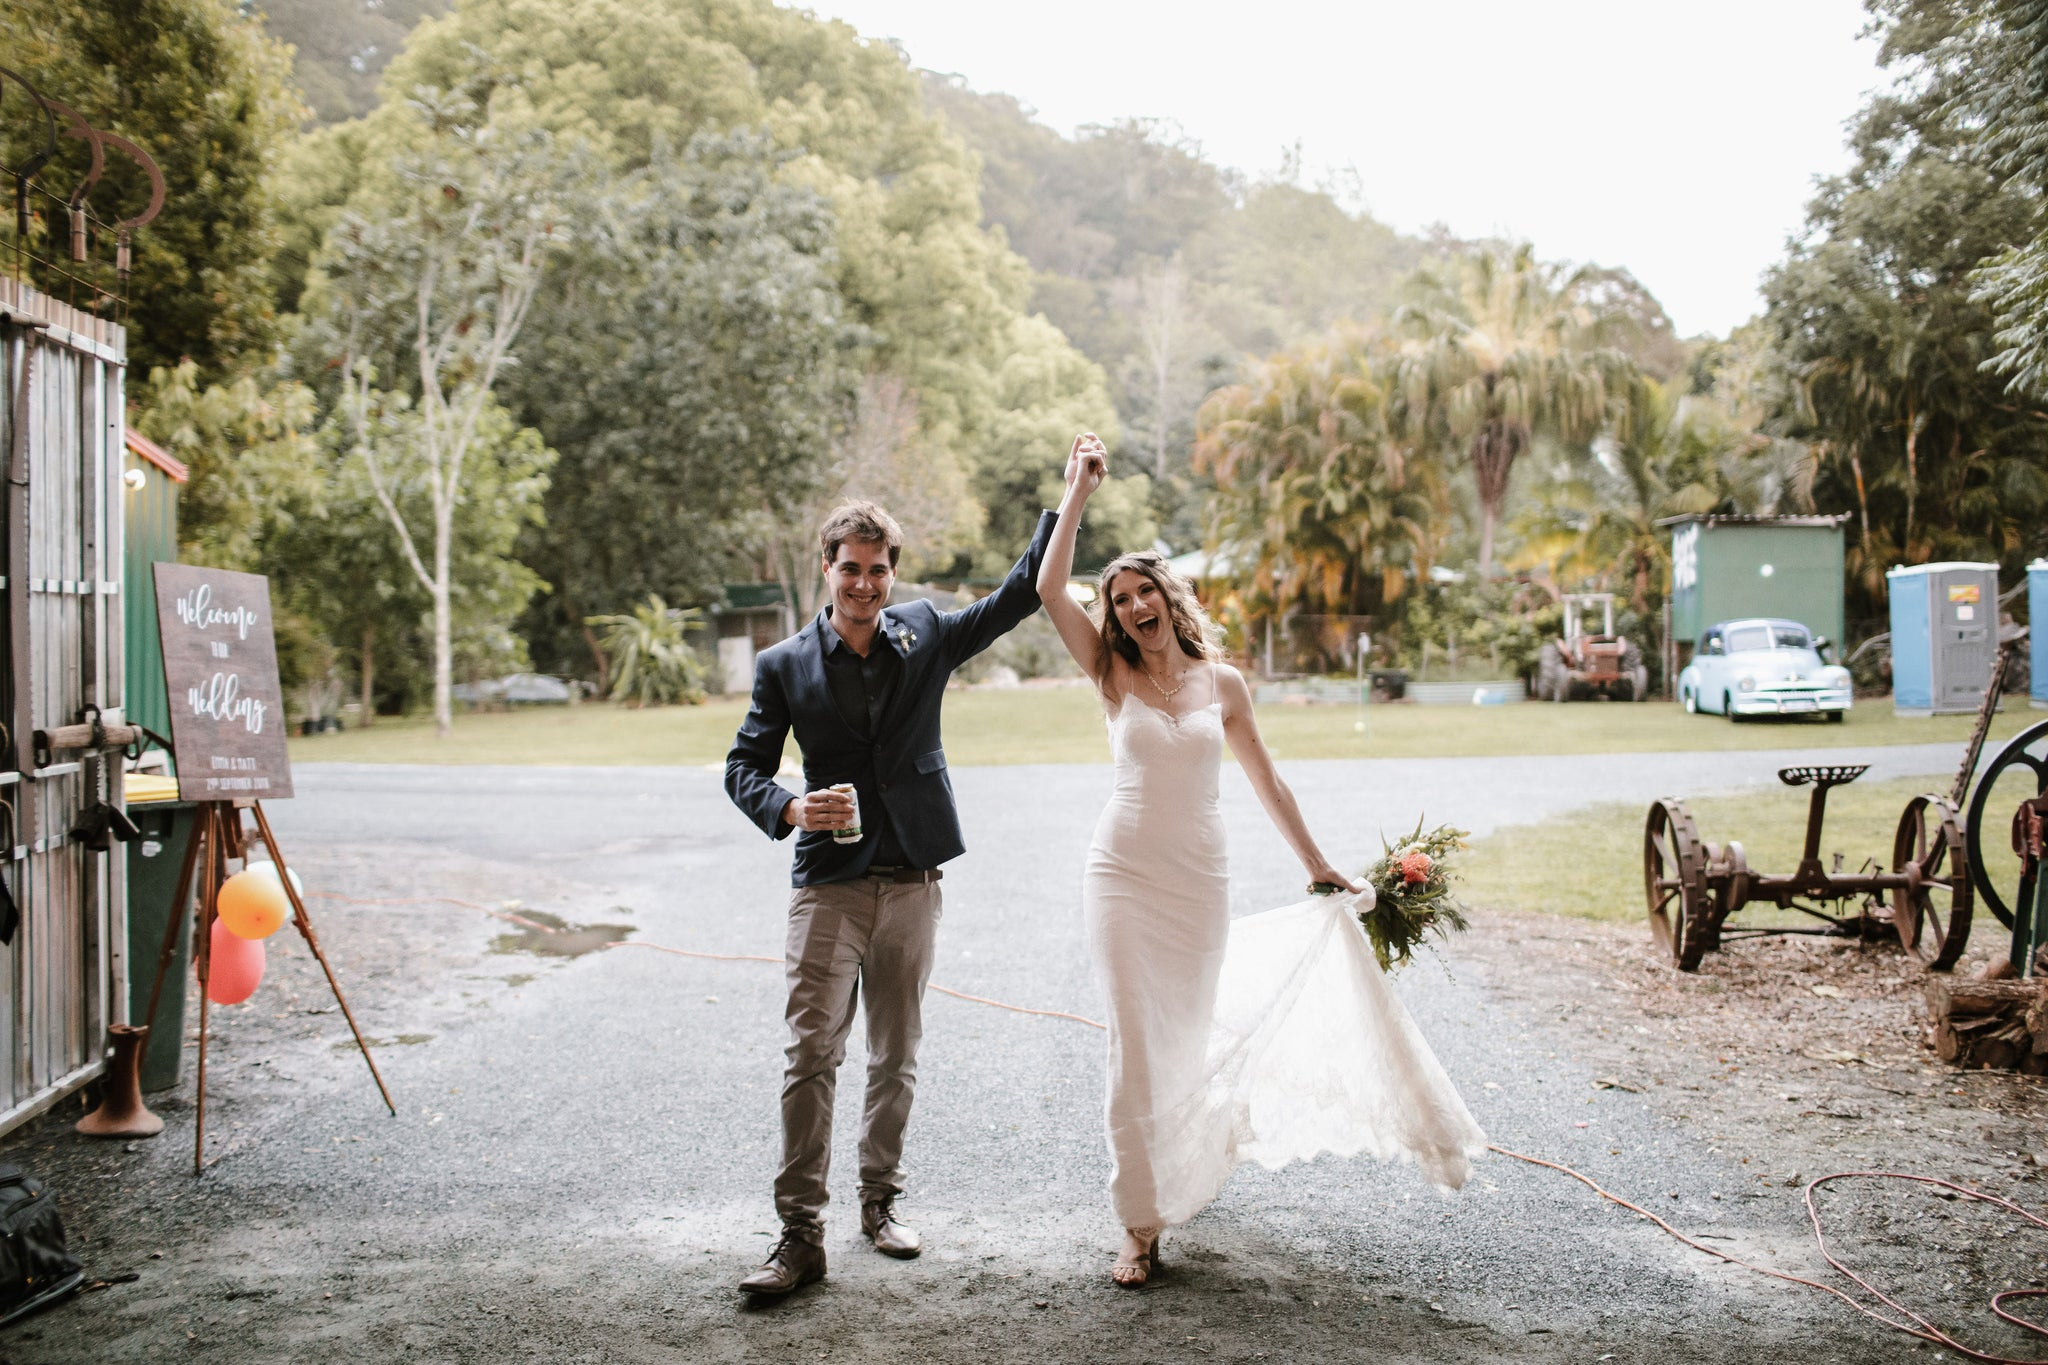 But designer bohemian wedding dress australia